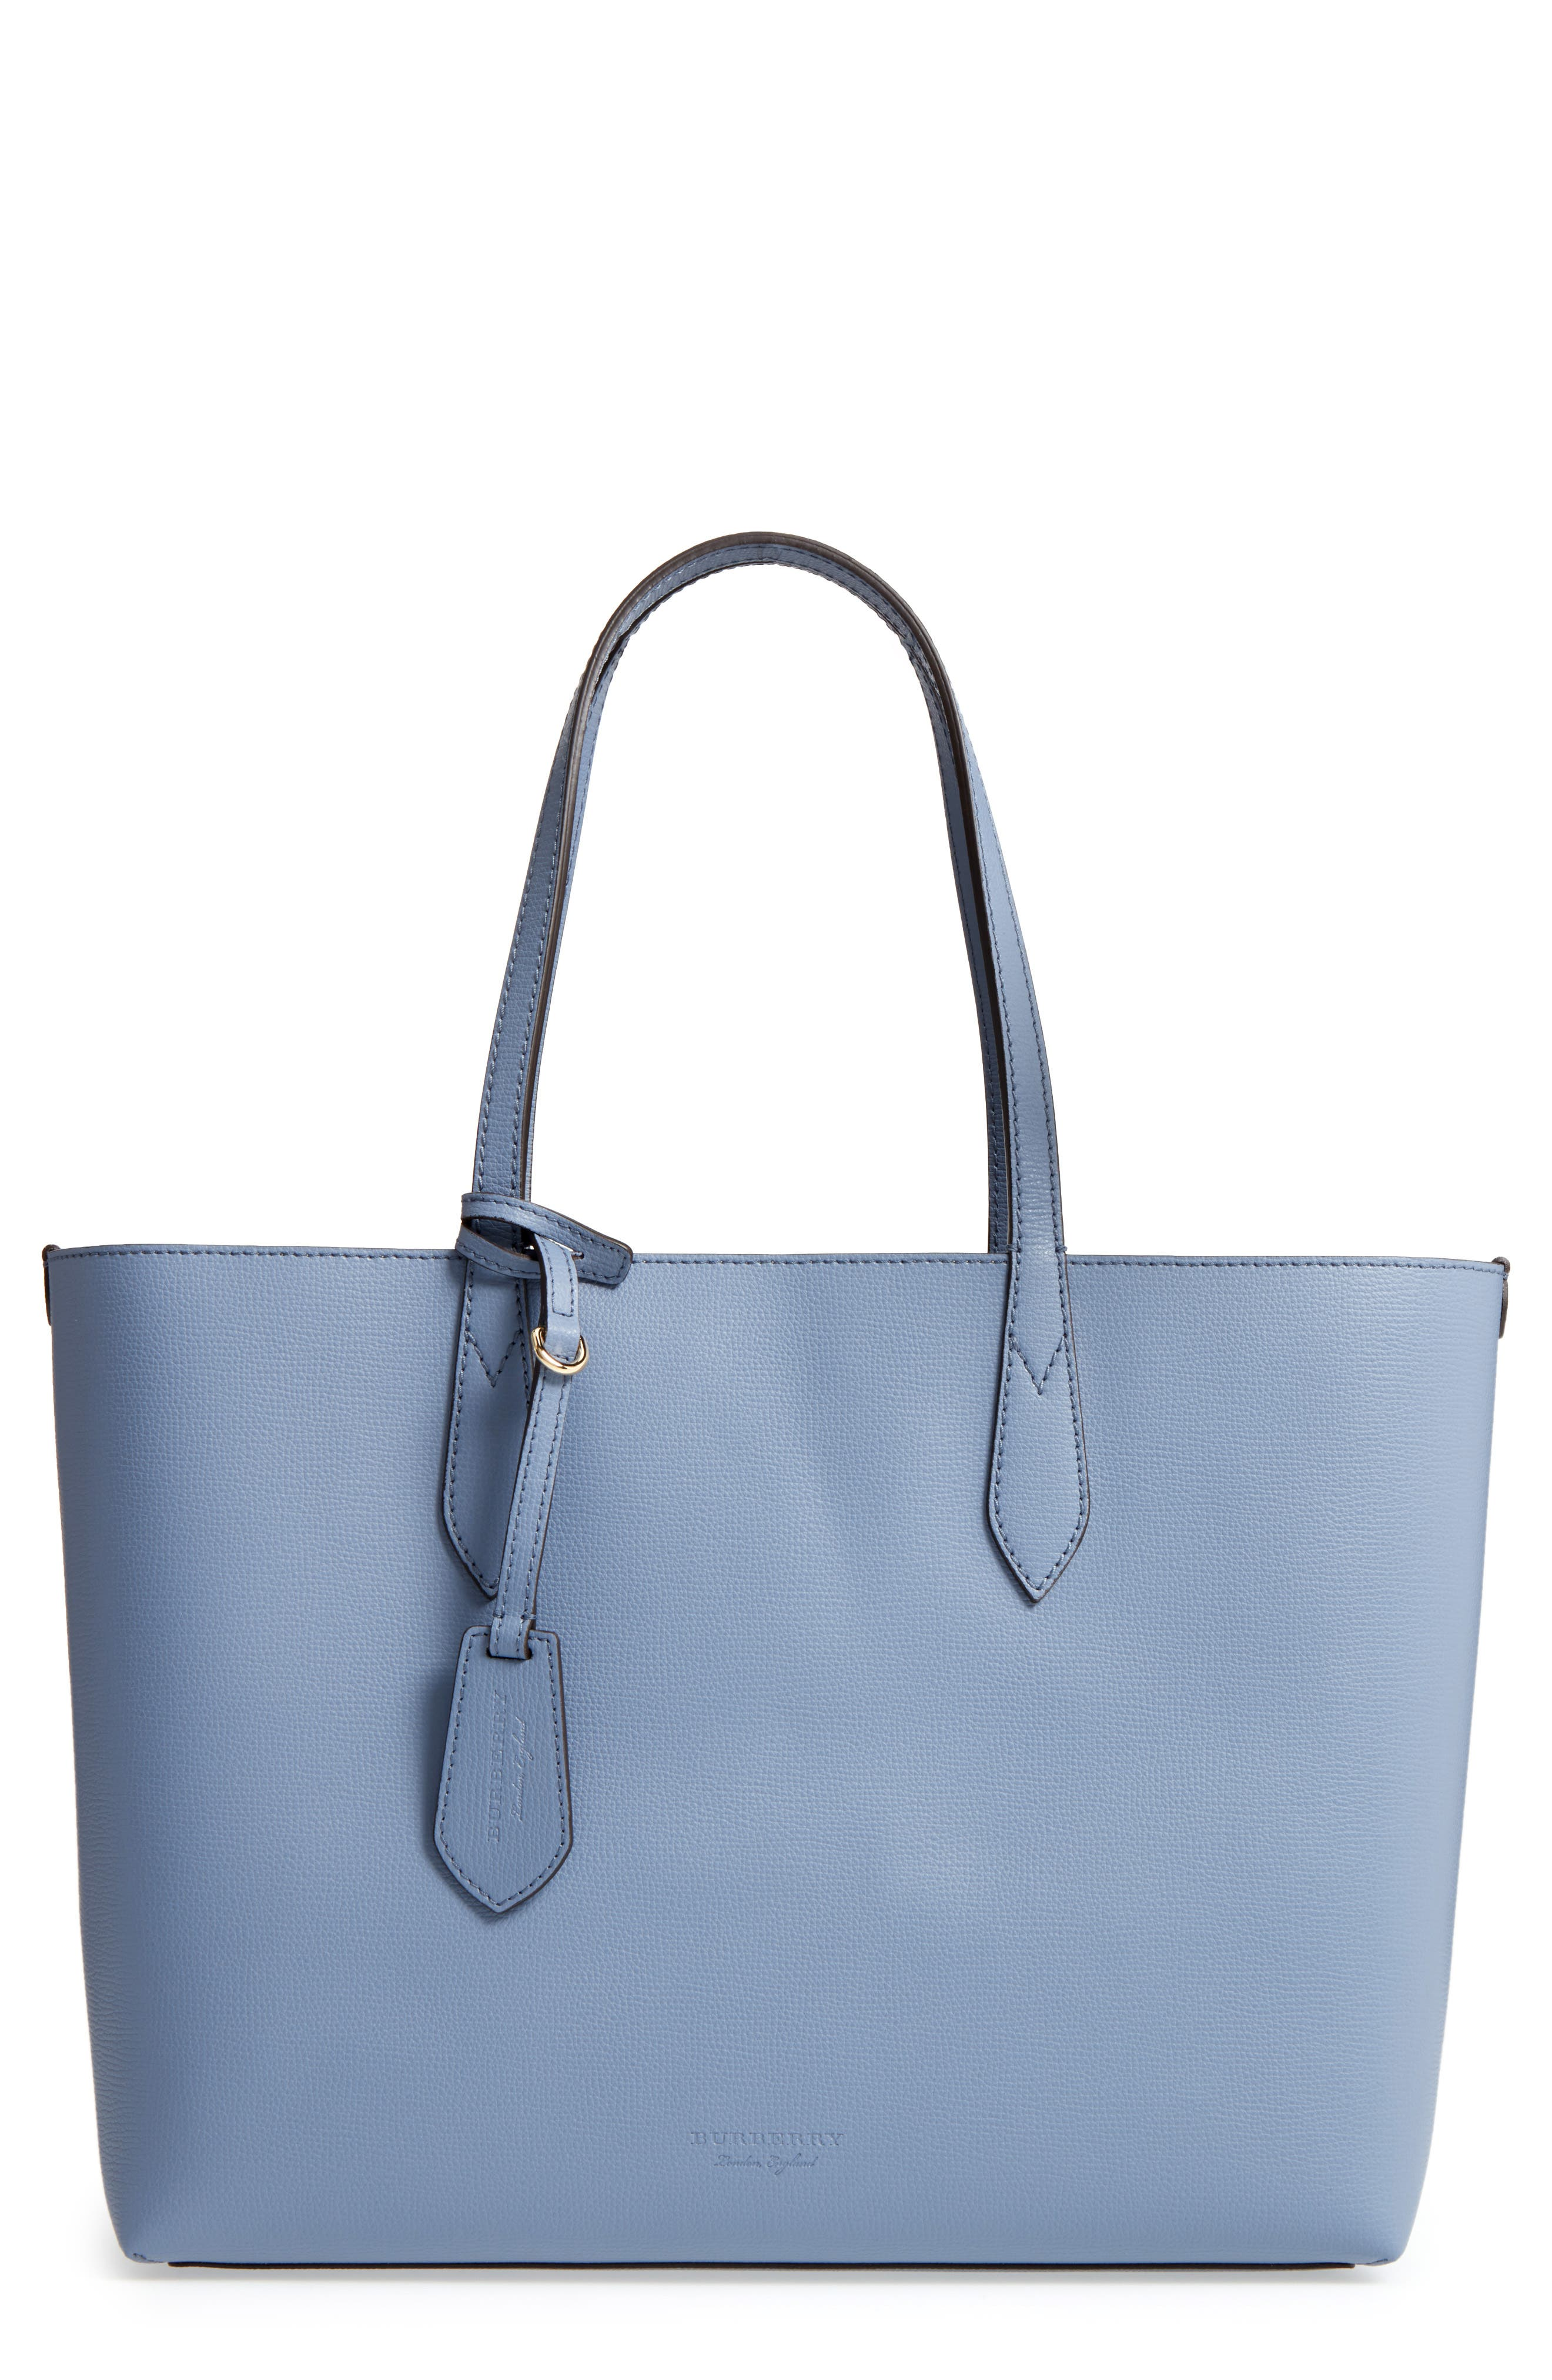 Medium Reversible Check & Leather Tote,                         Main,                         color, 427